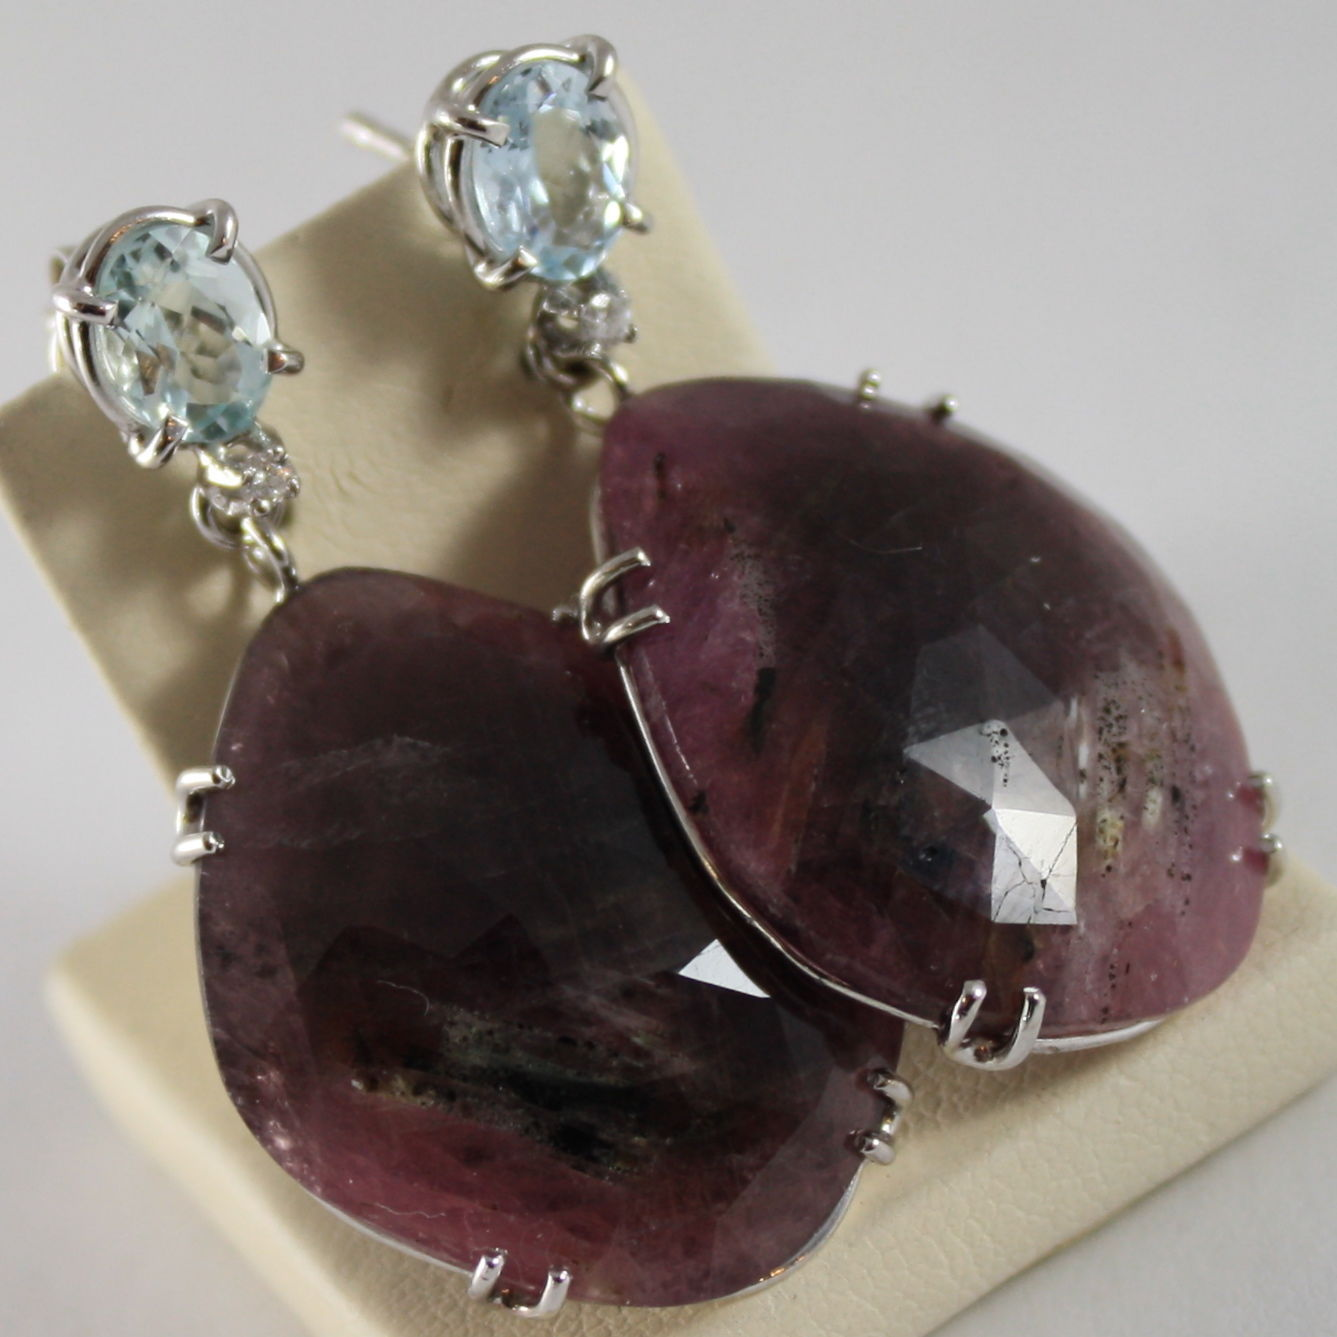 18K WHITE GOLD EARRINGS, DIAMOND CT 0.02, PURPLE SAPPHIRE CT 46, AQUAMARINE 1.40